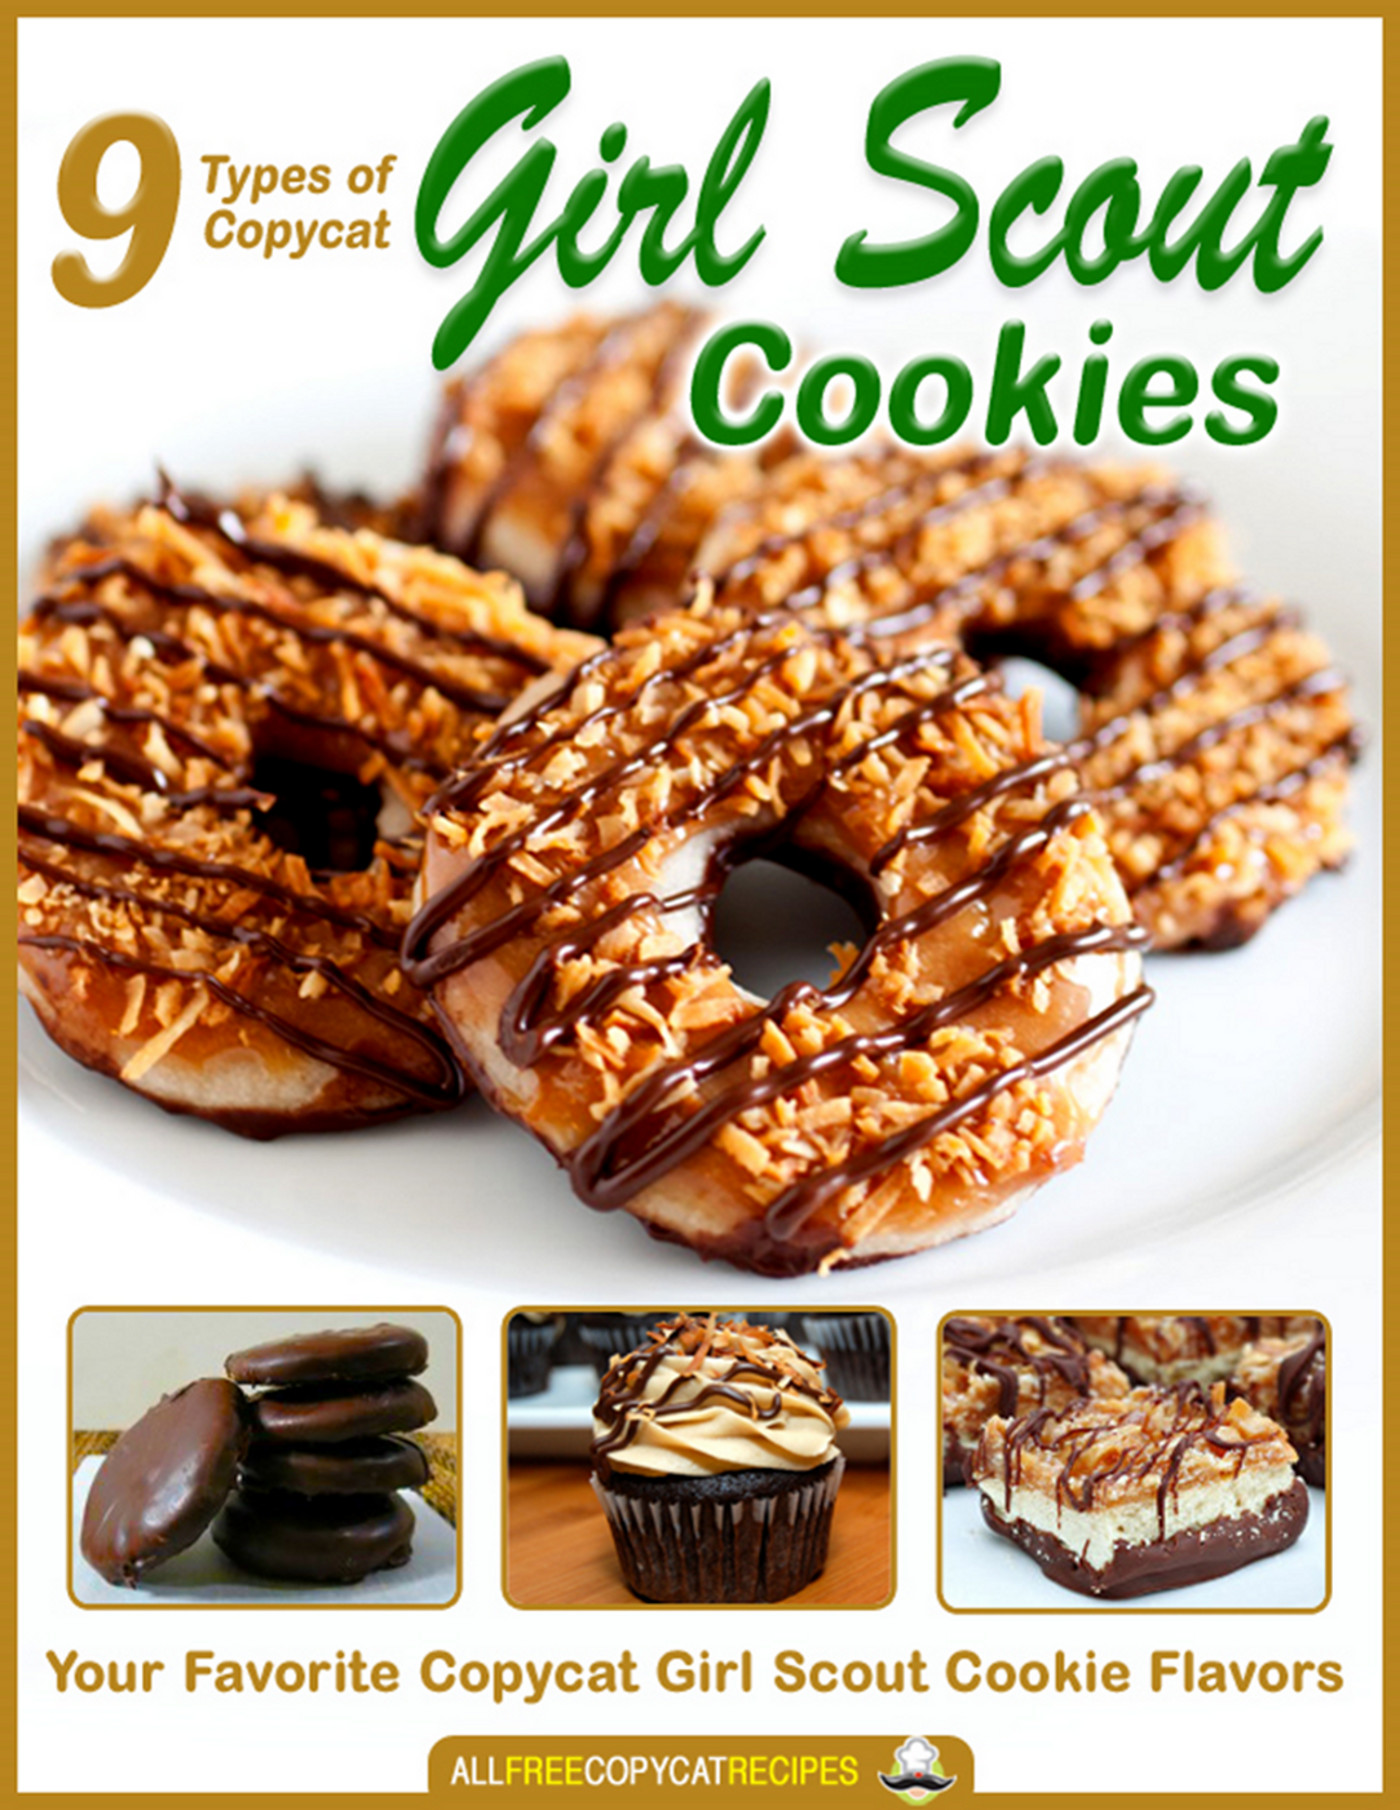 9 types of copycat girl scout cookies your favorite